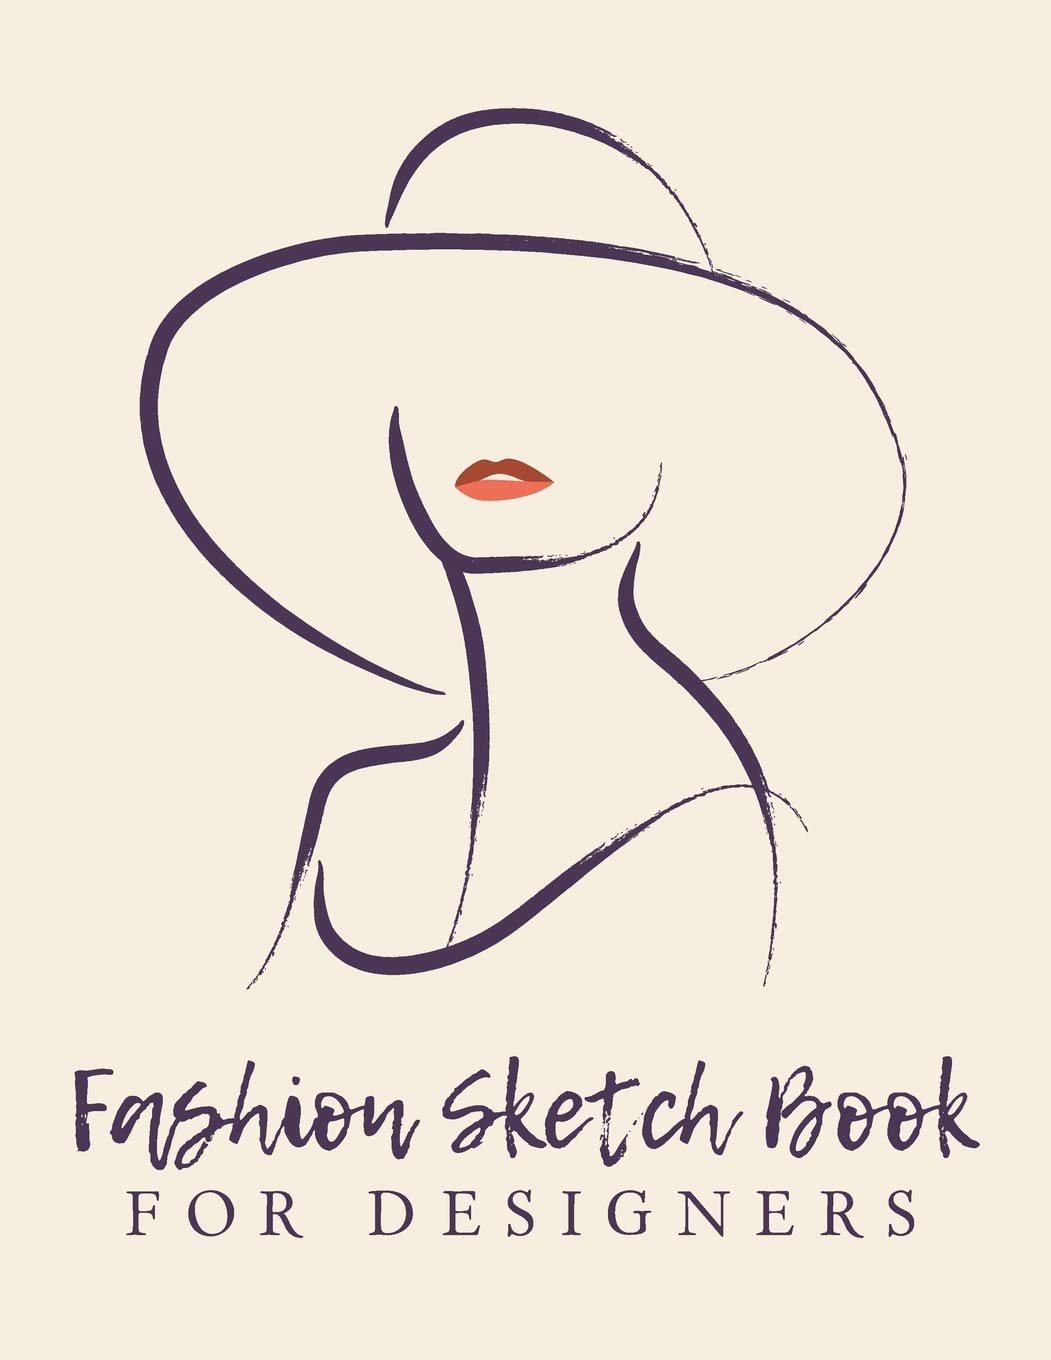 Buy Fashion Sketch Book For Designers Chic Fashion Sketch Book Fashion Designer Sketching Books Fashion Sketchpad Graduation Gift Fashion Design Journal Fashion Sketch Artist Practice Book Book Online At Low Prices